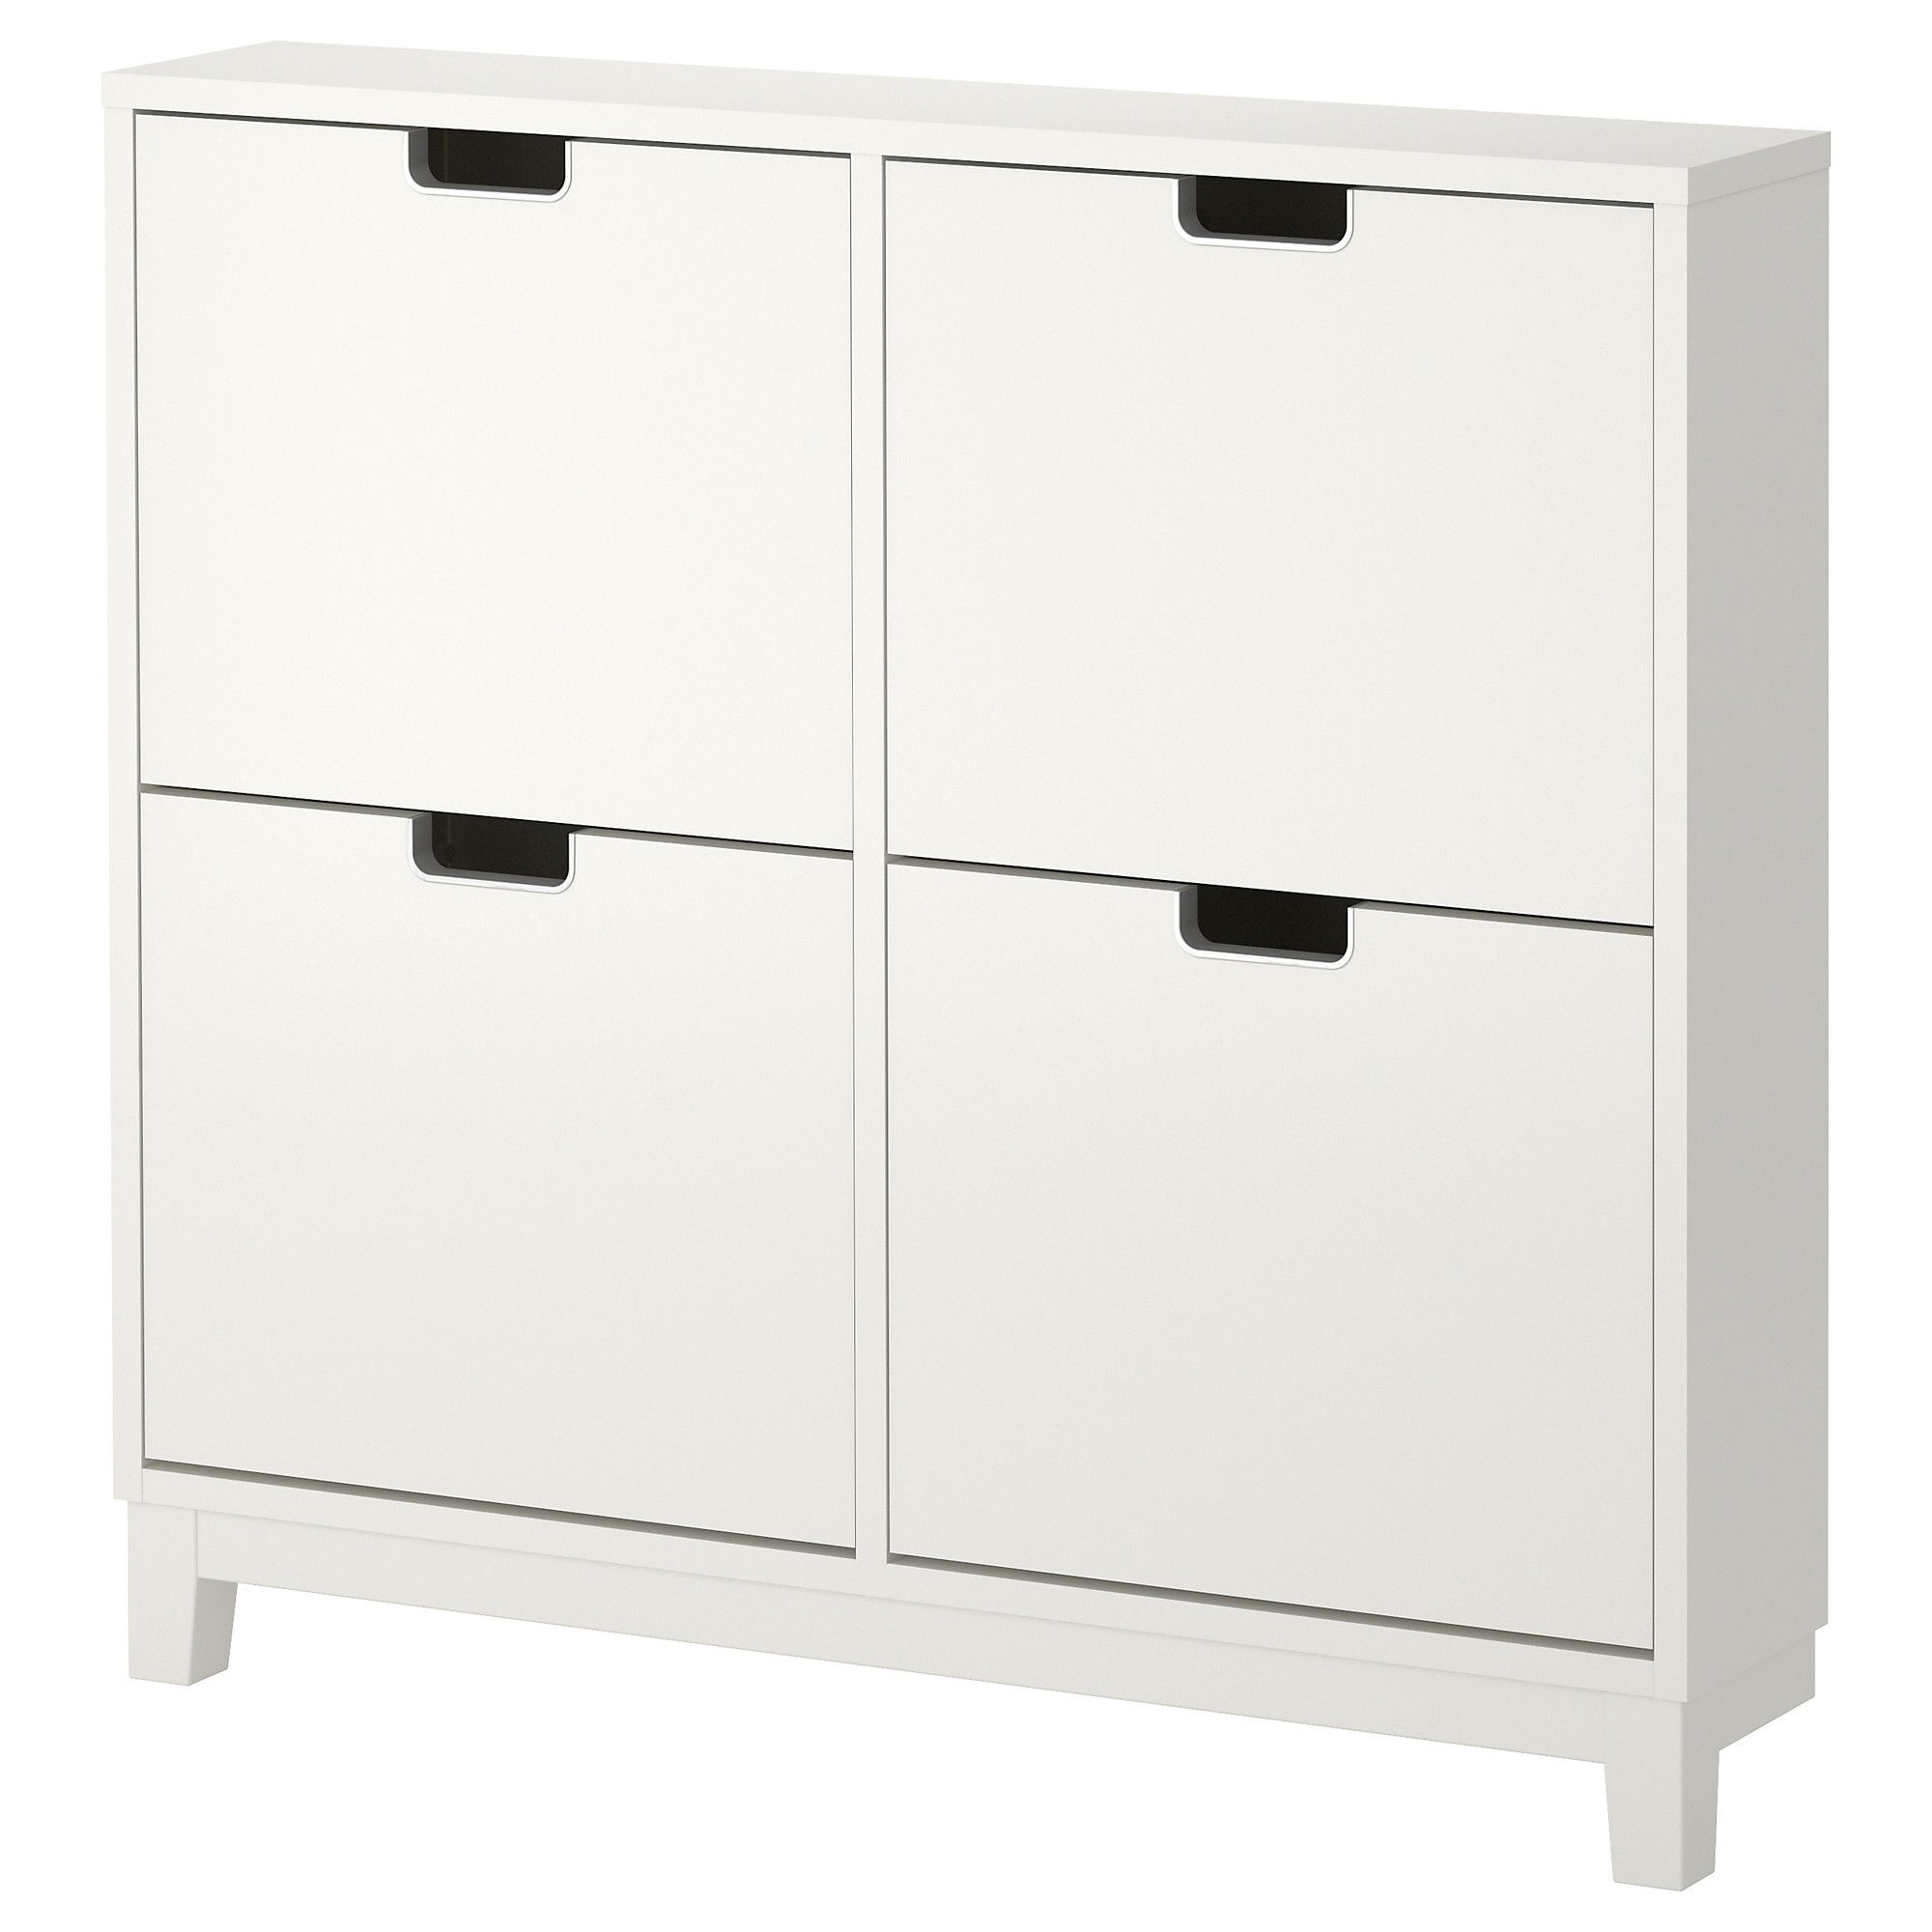 ST LL Shoe cabinet with 4 partments white